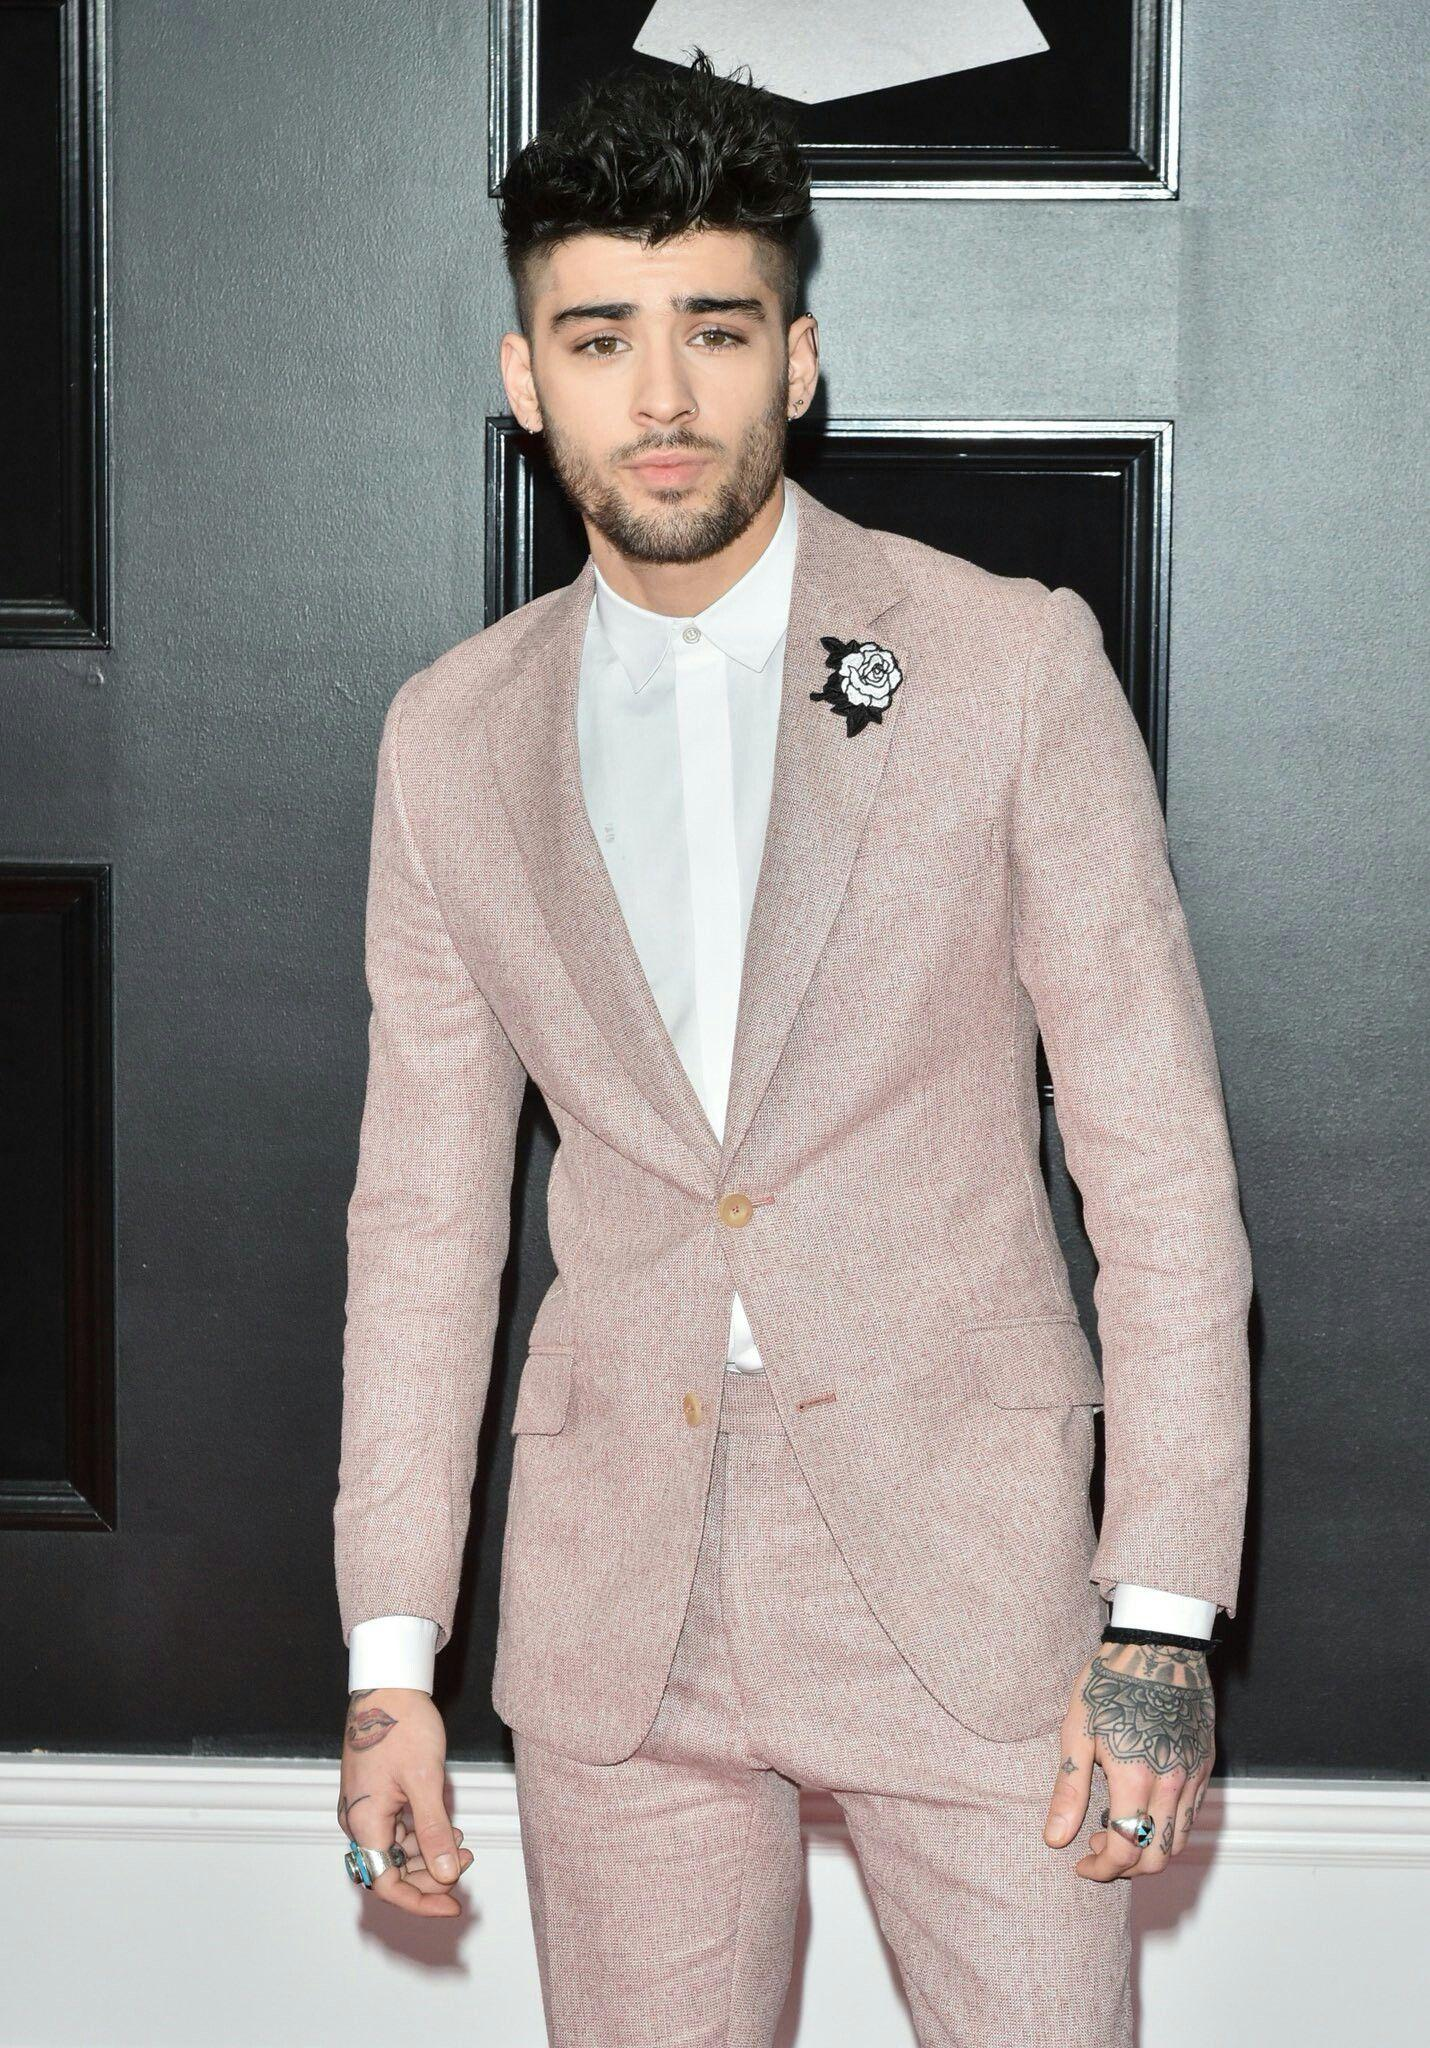 Zayn at the Grammy Awards tonight! | Zayn Malik in 2019 | Zayn, Zayn ...